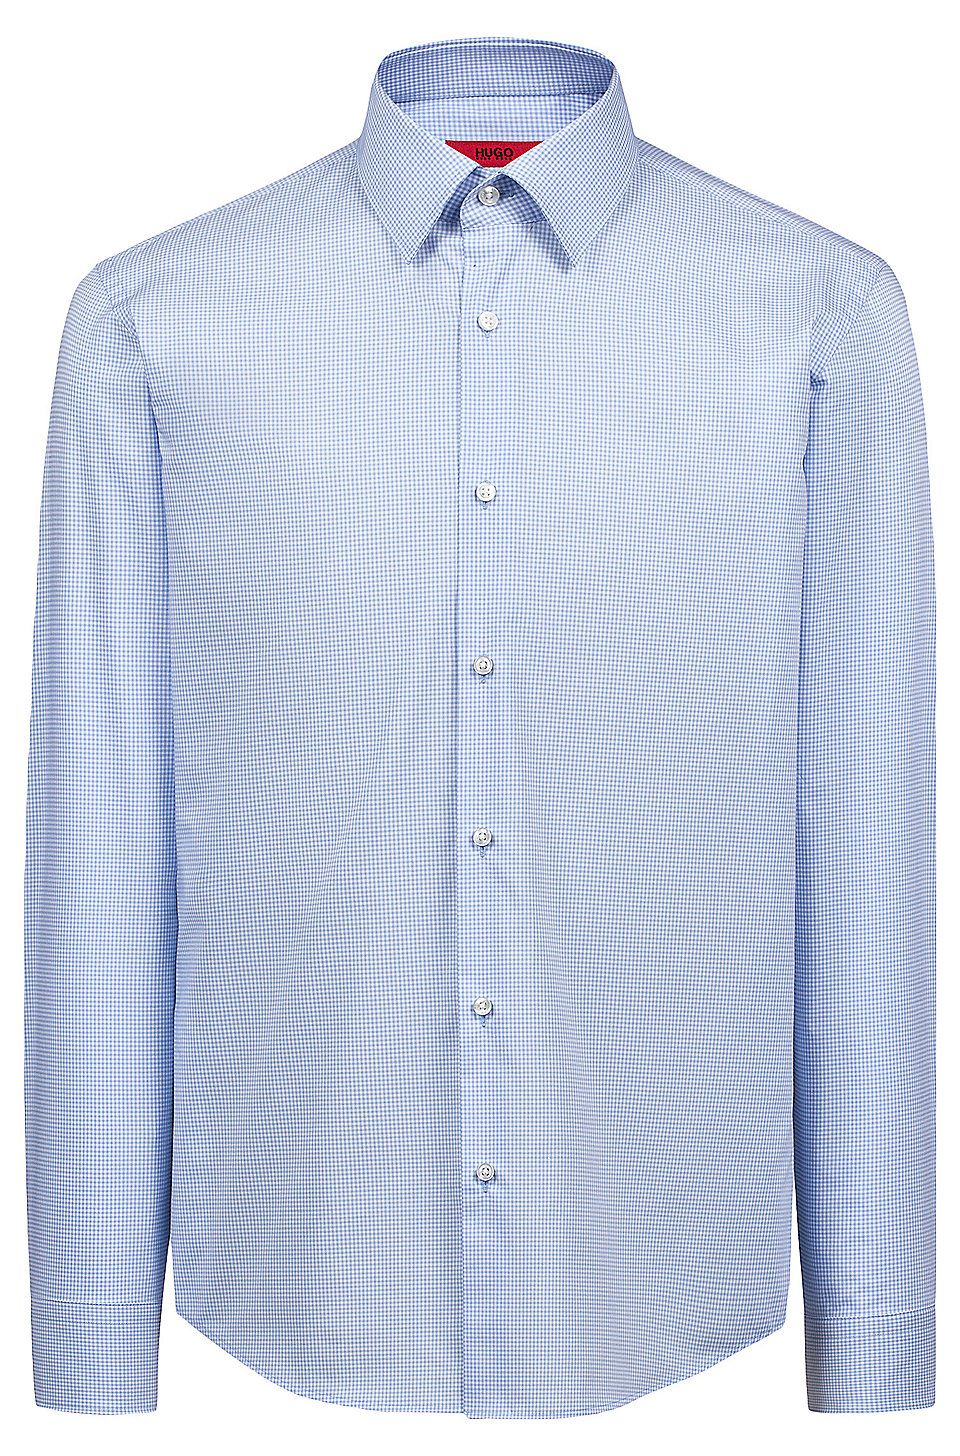 2ba55aa79 HUGO BOSS Regular-fit easy-iron shirt in Vichy-check cotton - Light Blue  Shirts from HUGO for Men in the official HUGO BOSS Online Store free  shipping